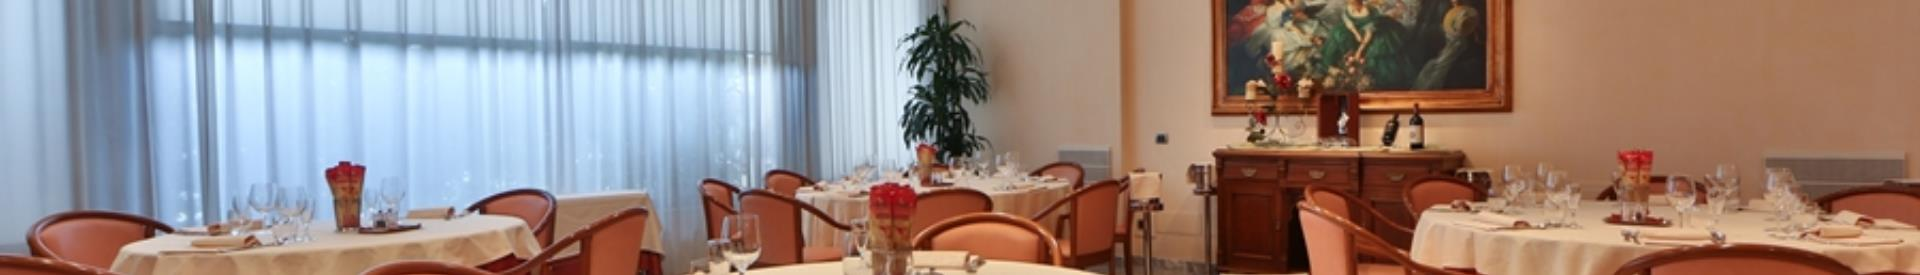 Open for lunch and dinner Restaurant meridians Forlì, ideal for business lunches and dinners. meat specialities, fish and regional